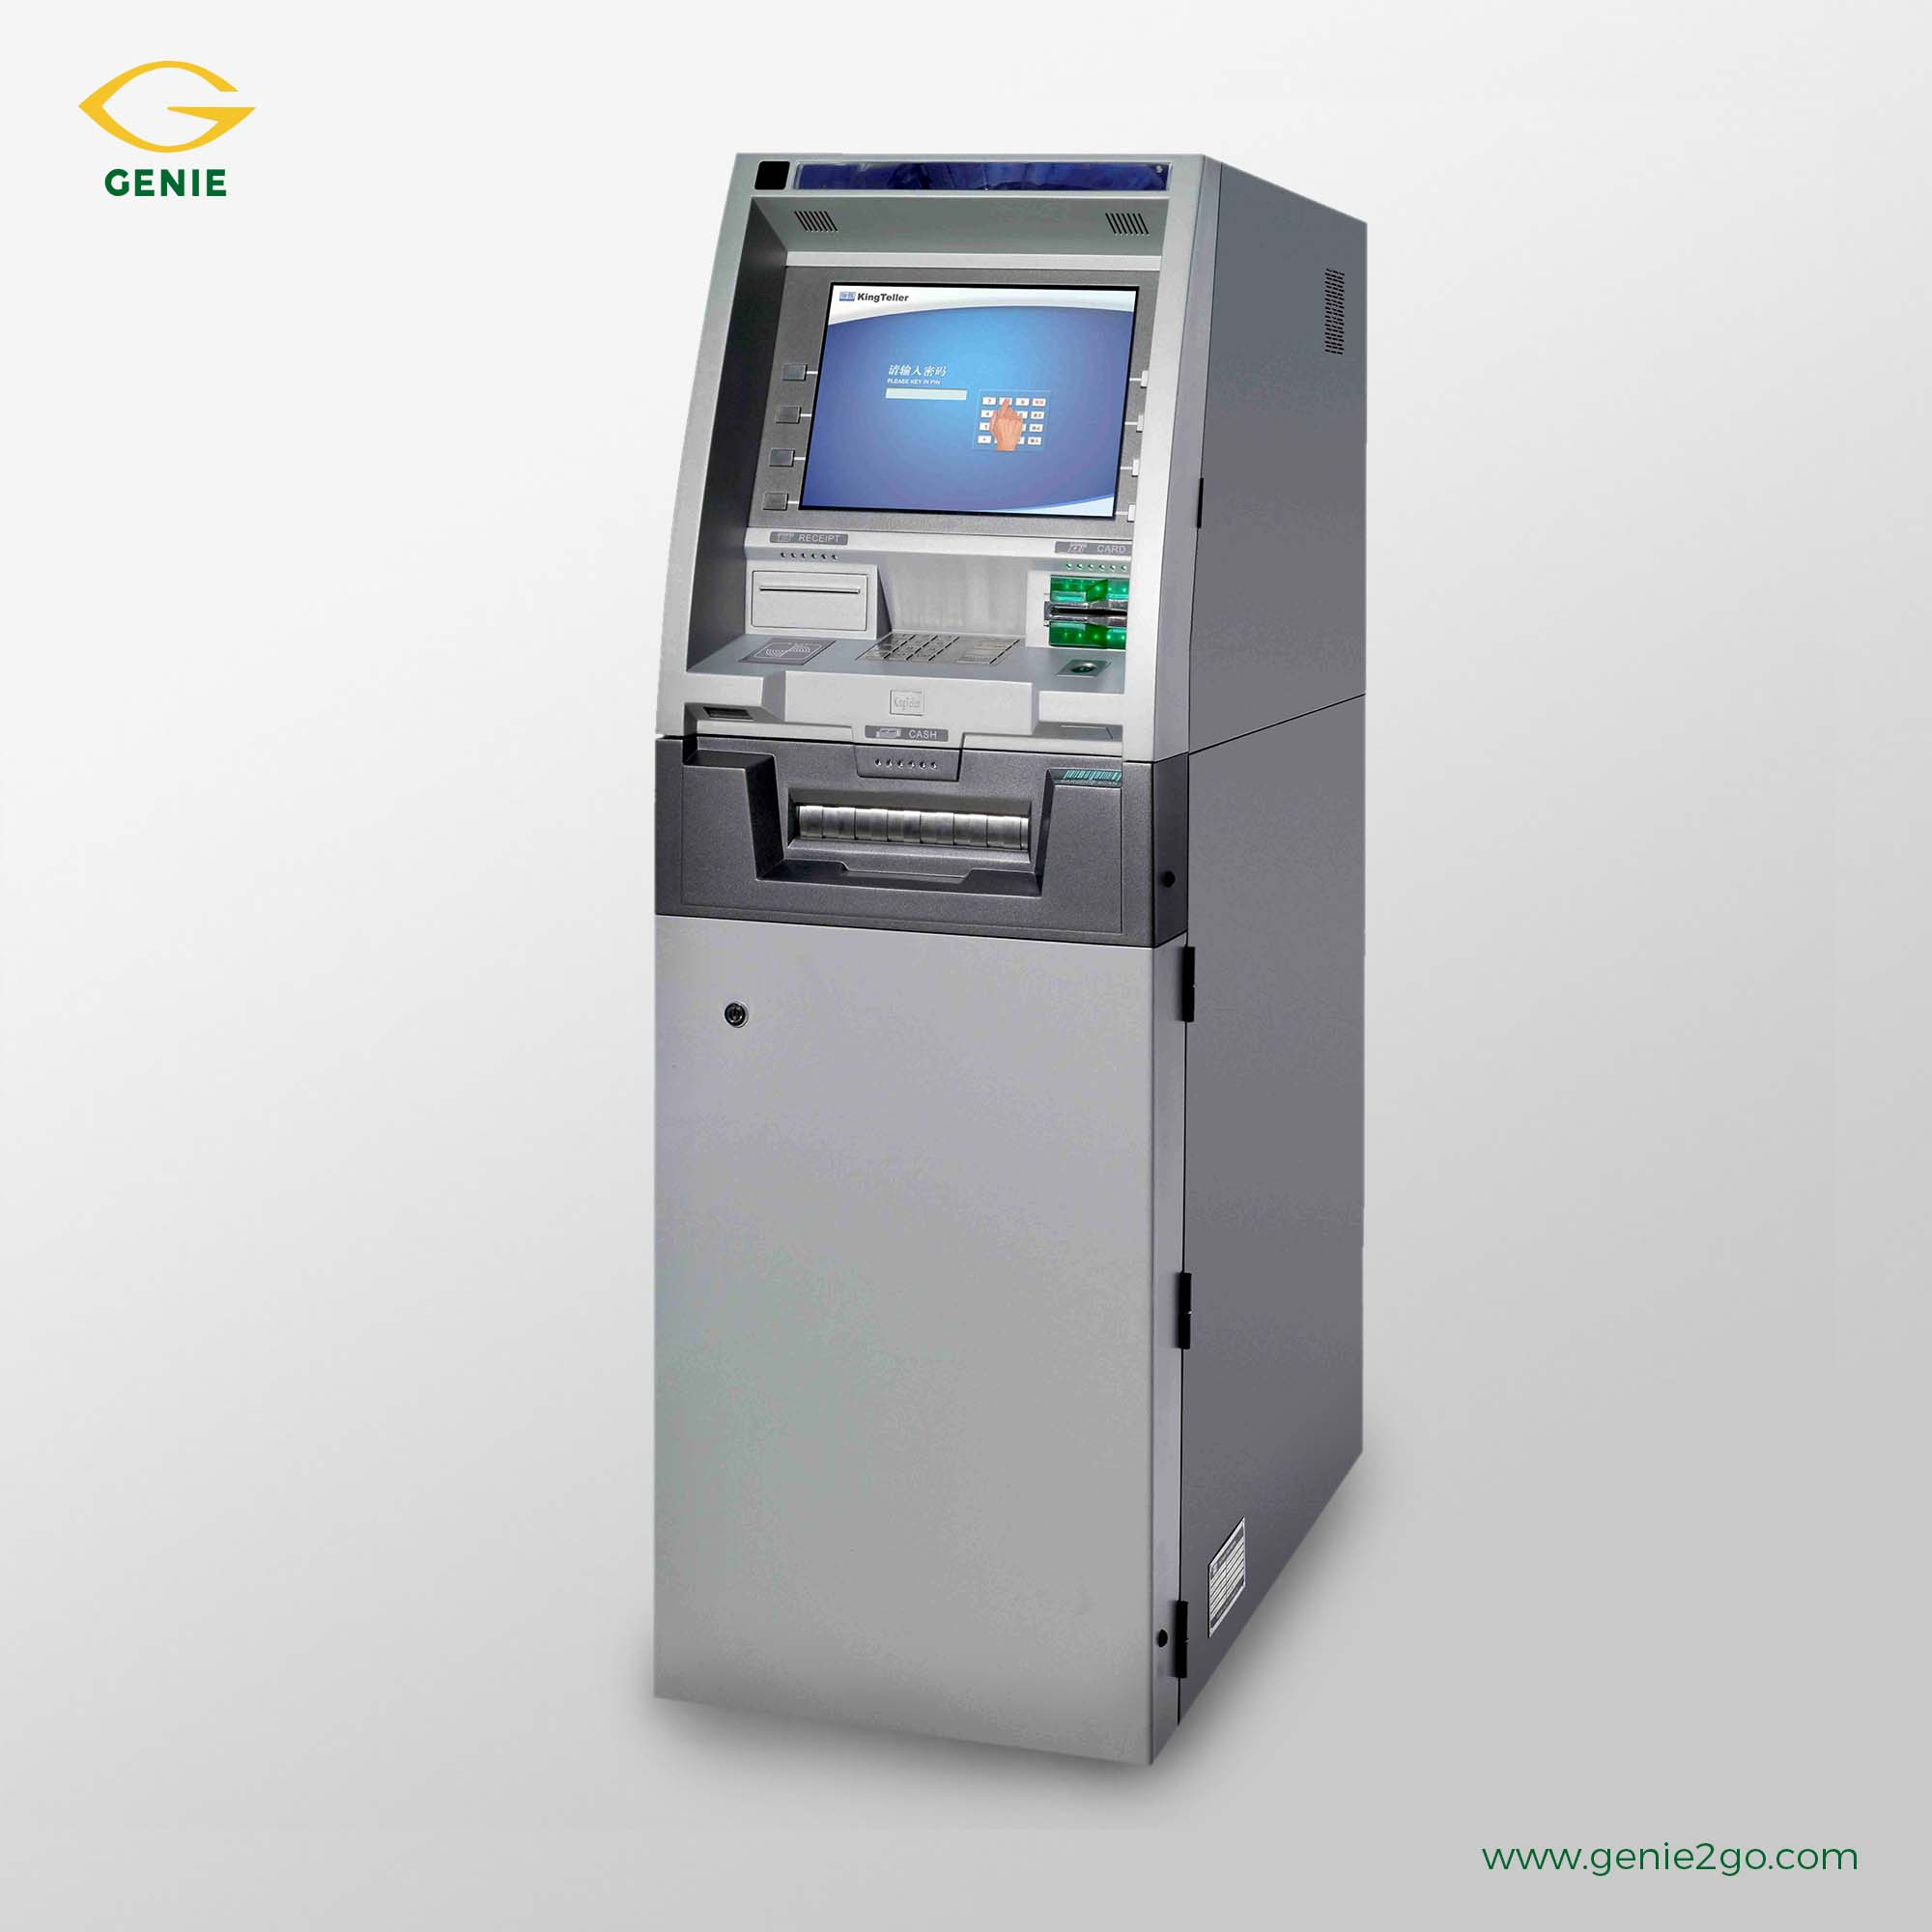 High Speed Lobby Cash Dispenser